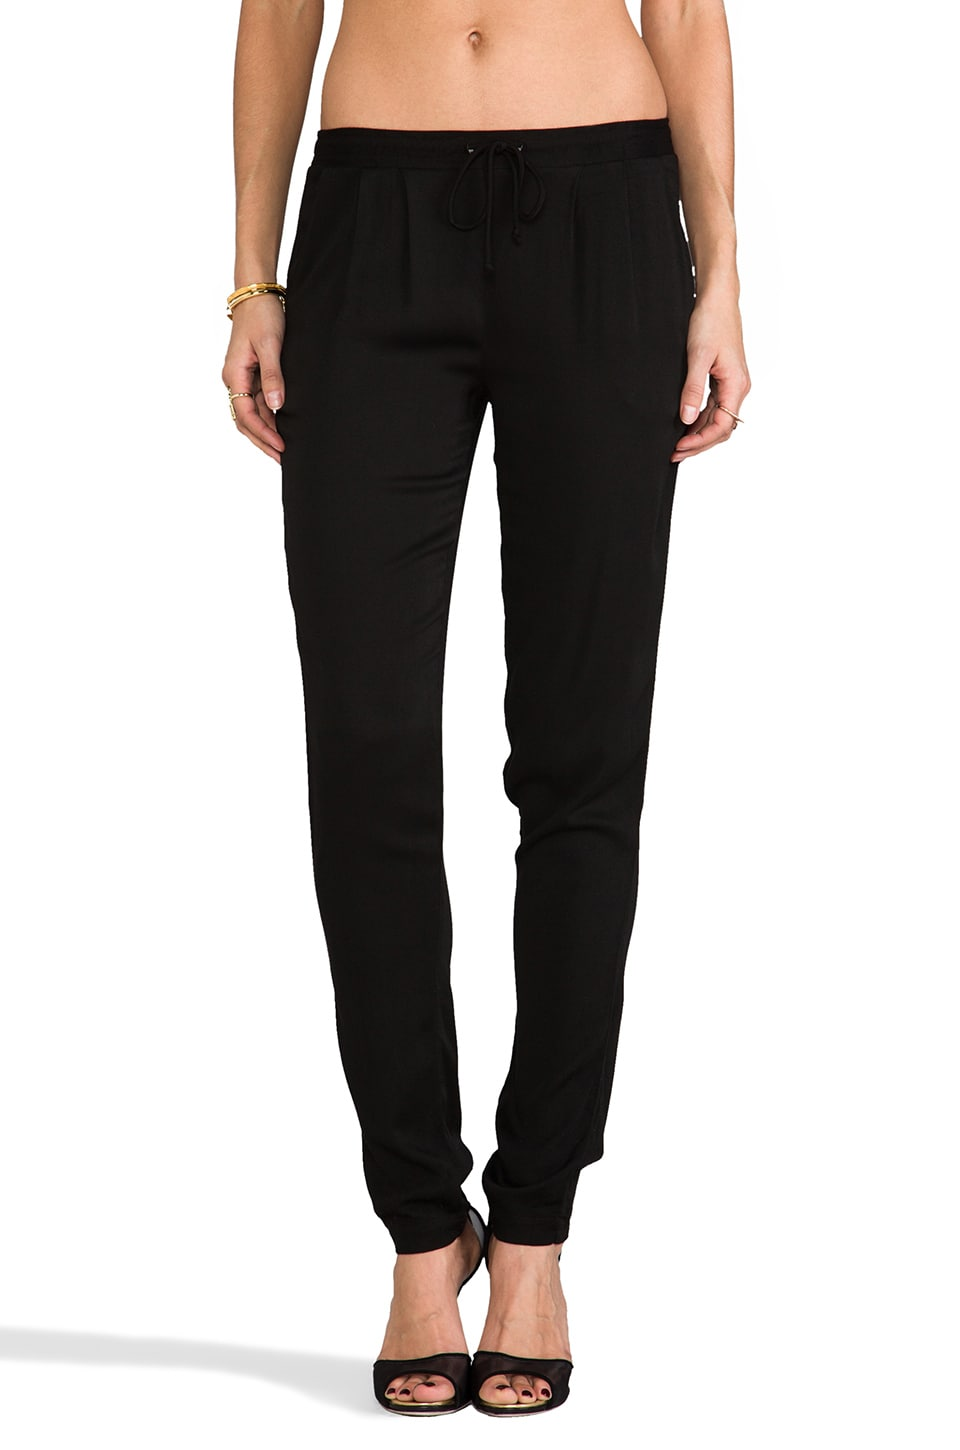 Kain Moore Pant in Black